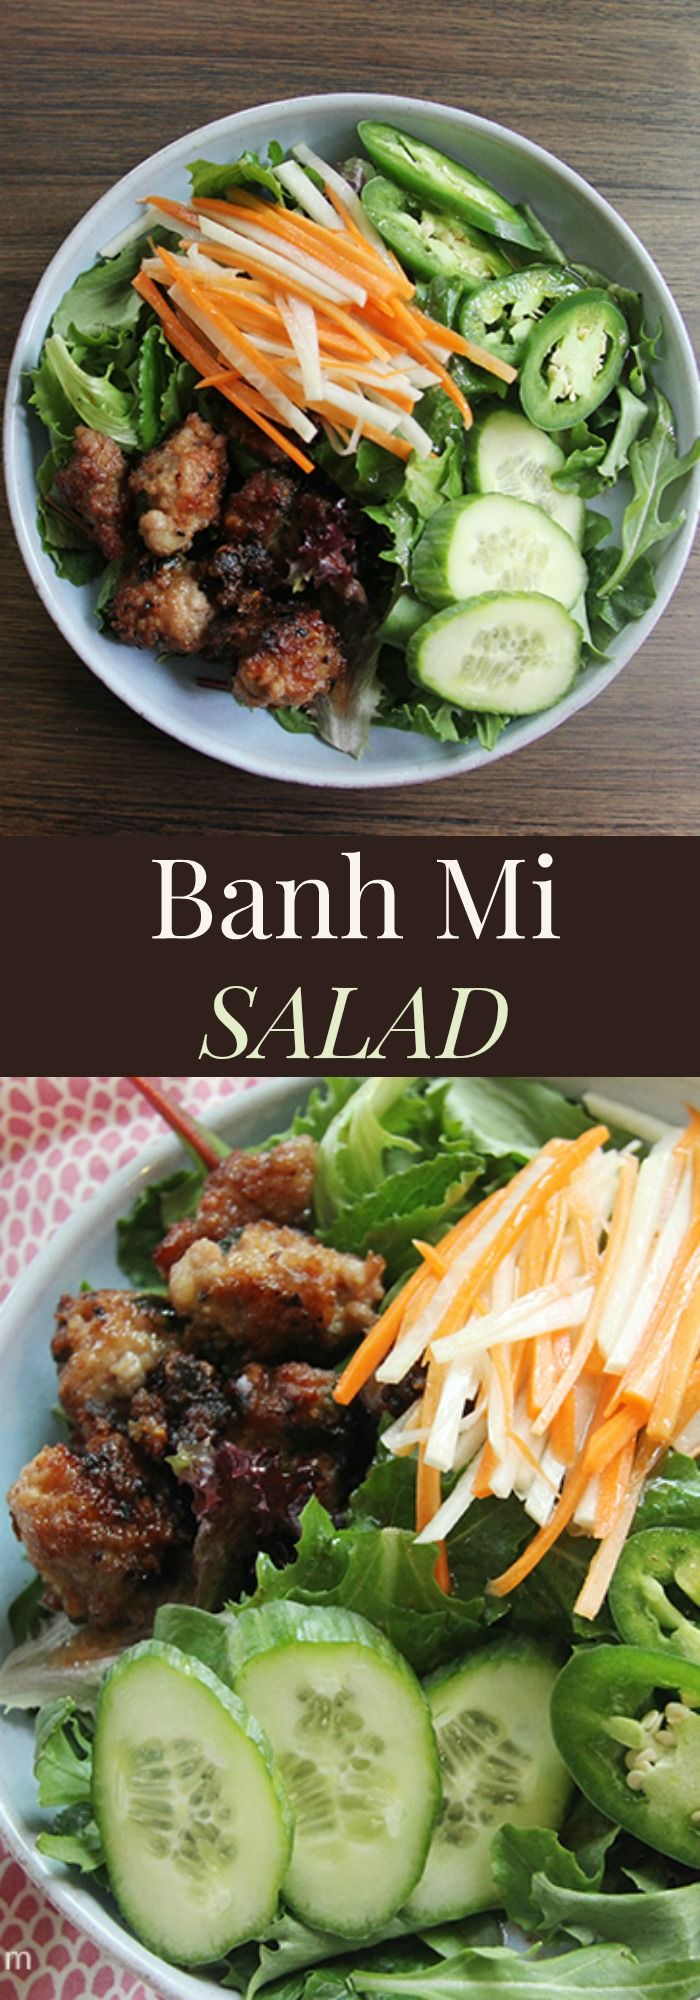 Banh Mi Salad - the traditional Vietnamese Banh Mi sandwich is reinvented in this healthy salad recipe. | cupcakesandkalechips.com | gluten free, low carb